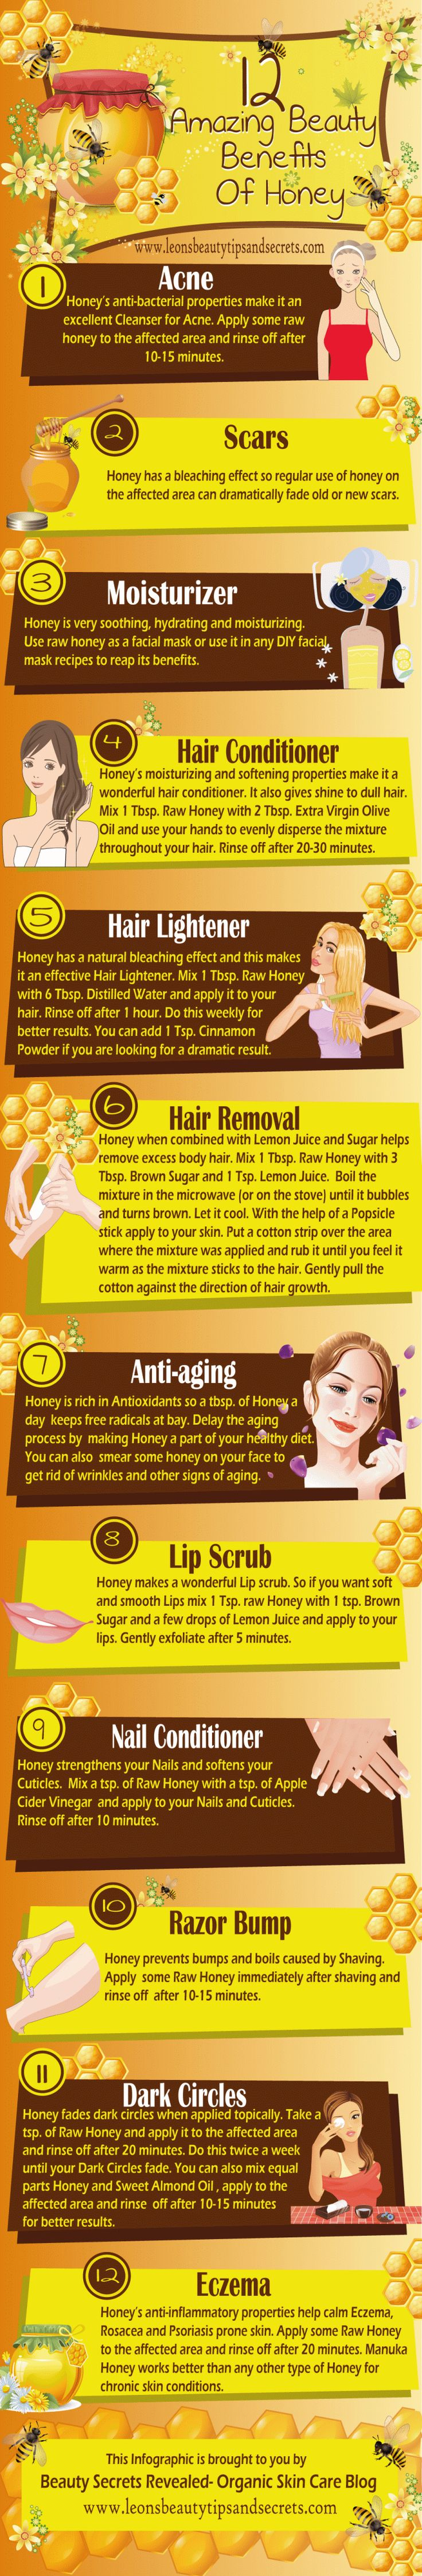 12 Amazing Beauty Benefits Of #Honey #Infographic.... Raw honey is usually best! ... from Beauty Secrets Revealed - Organic Skin Care Blog....leonsbeautytipssndsecrets.com